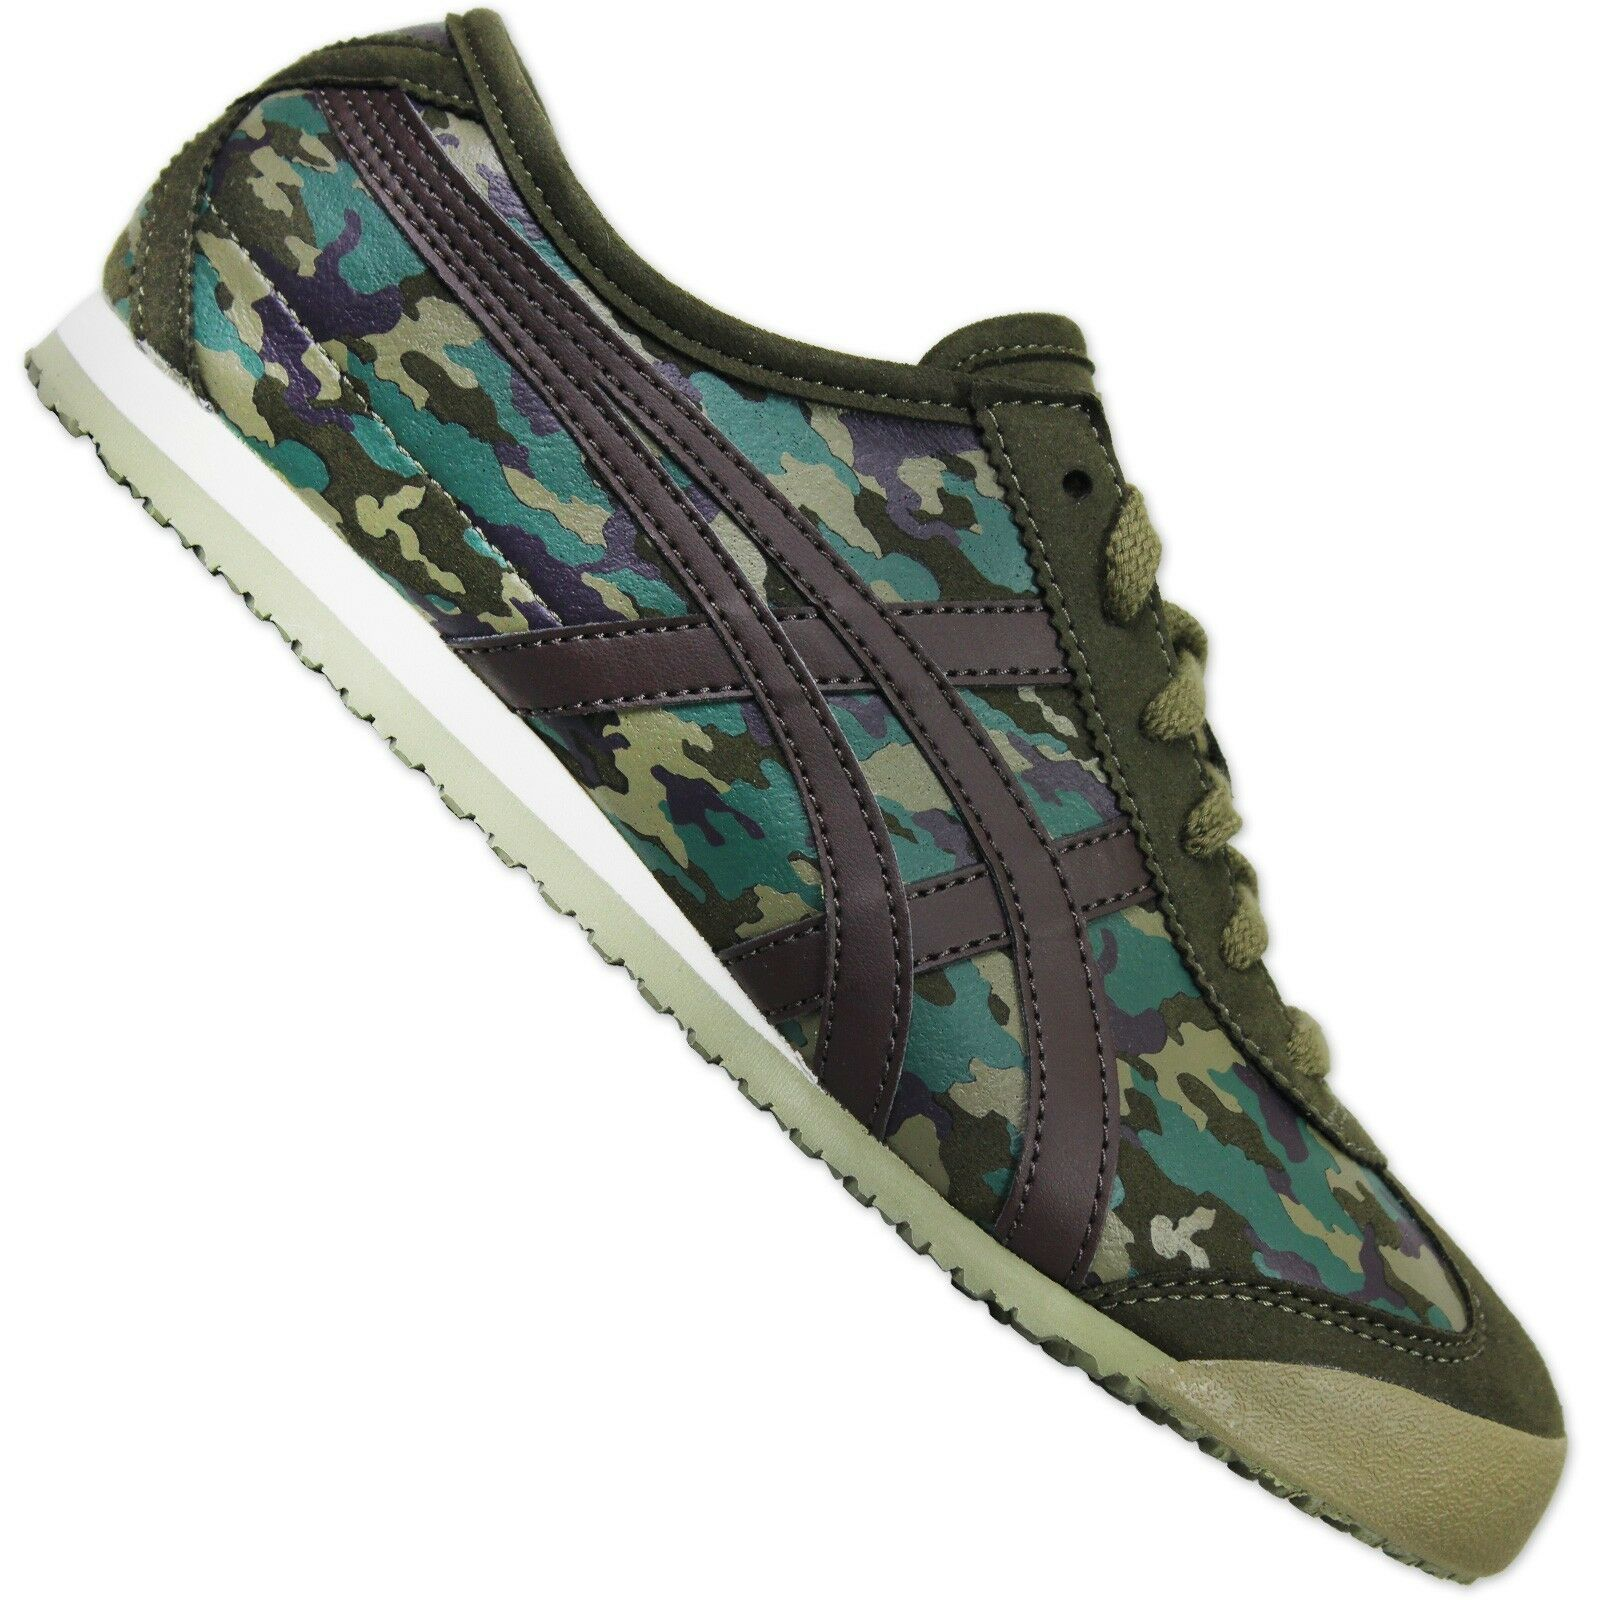 Asics Onitsuka Tigre Mexique 66 Camouflage Militaire